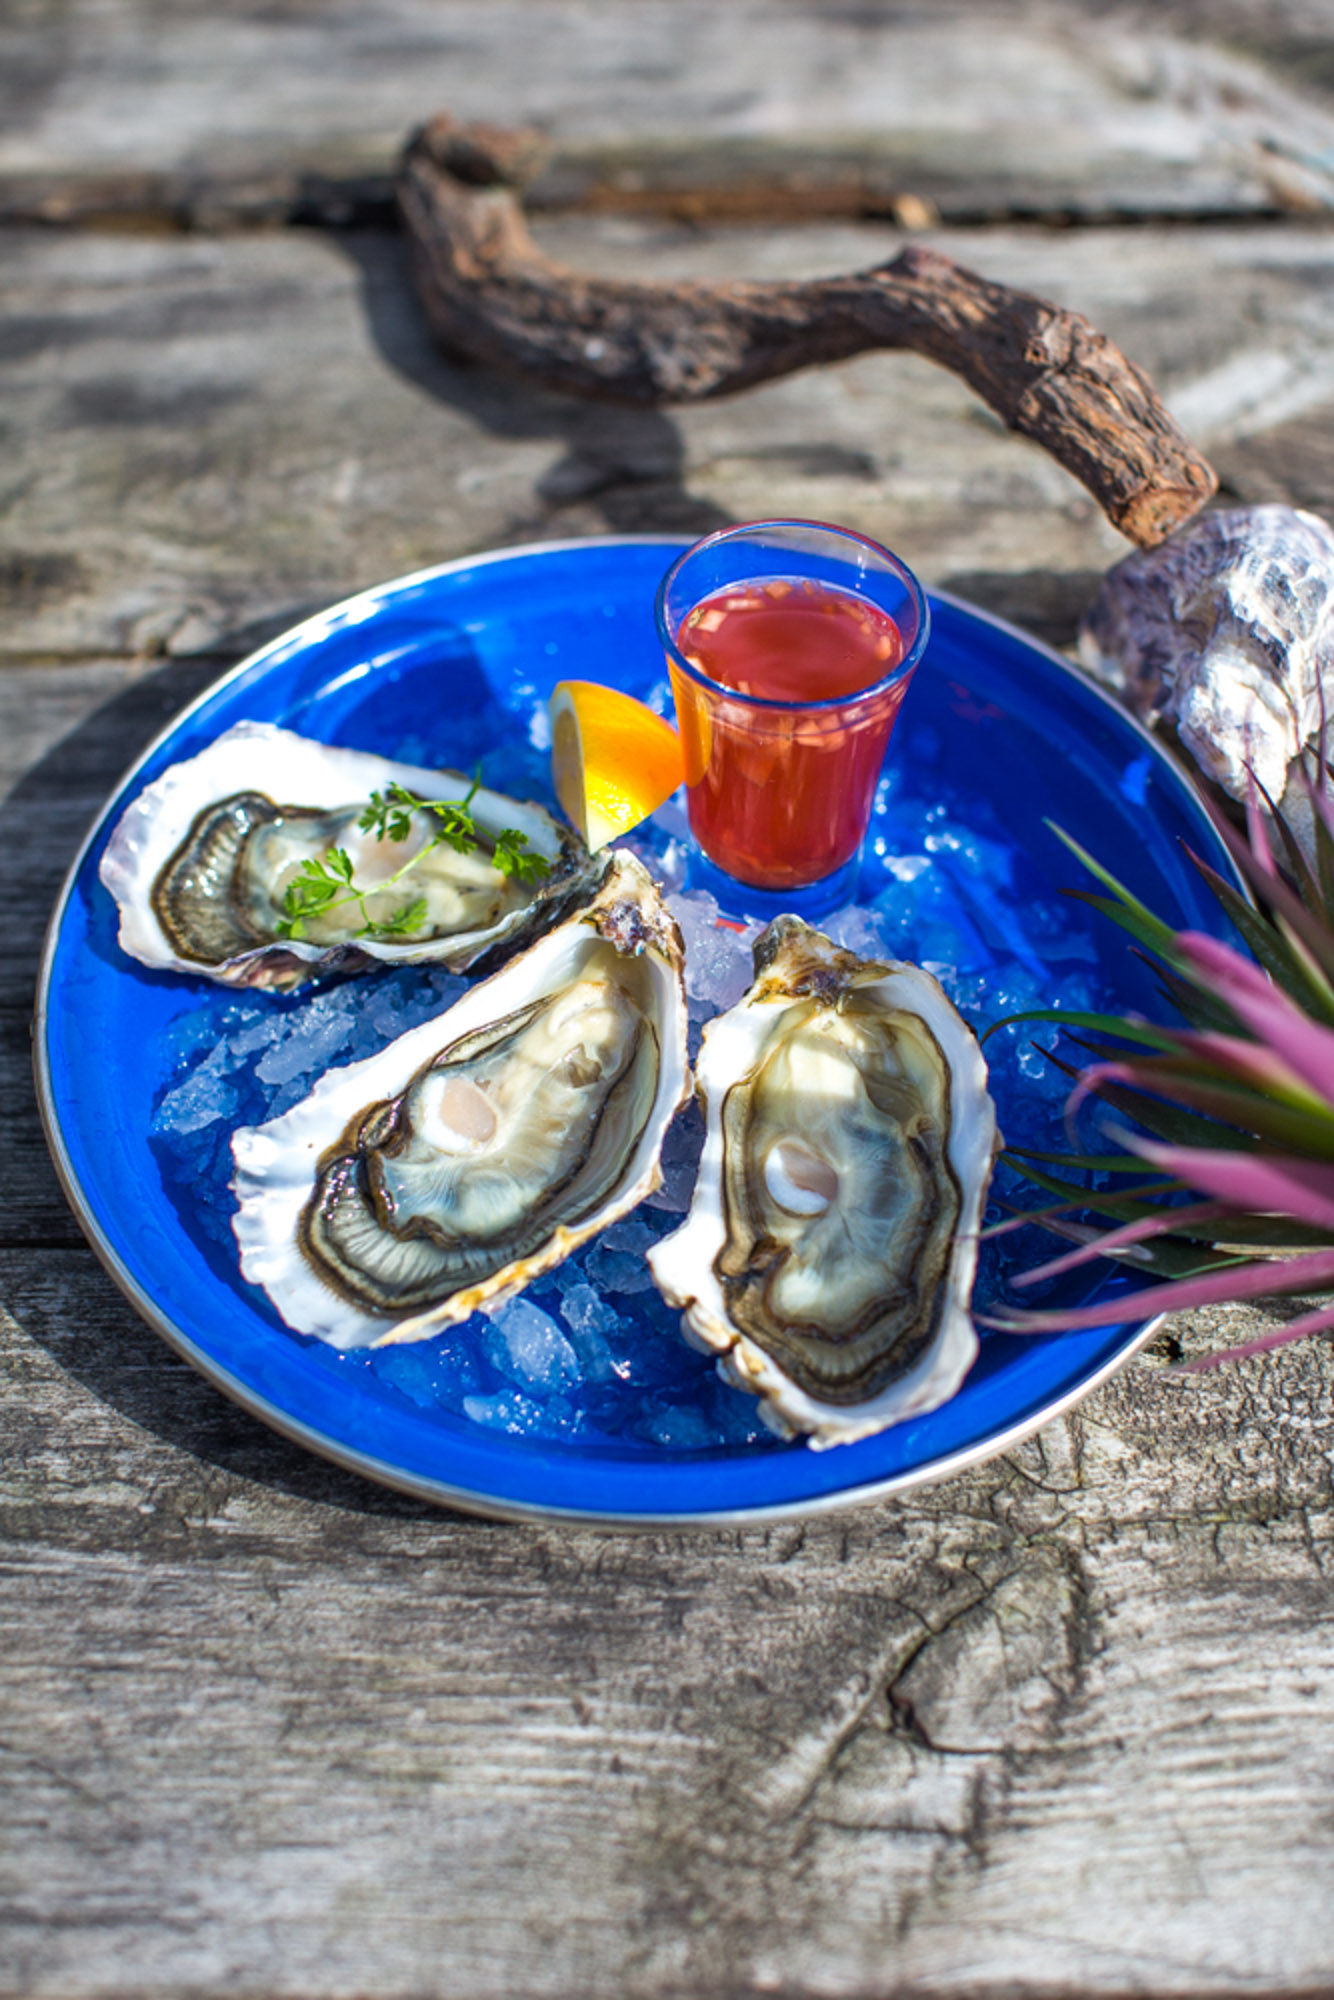 Oysters, Dorset- Food photographer